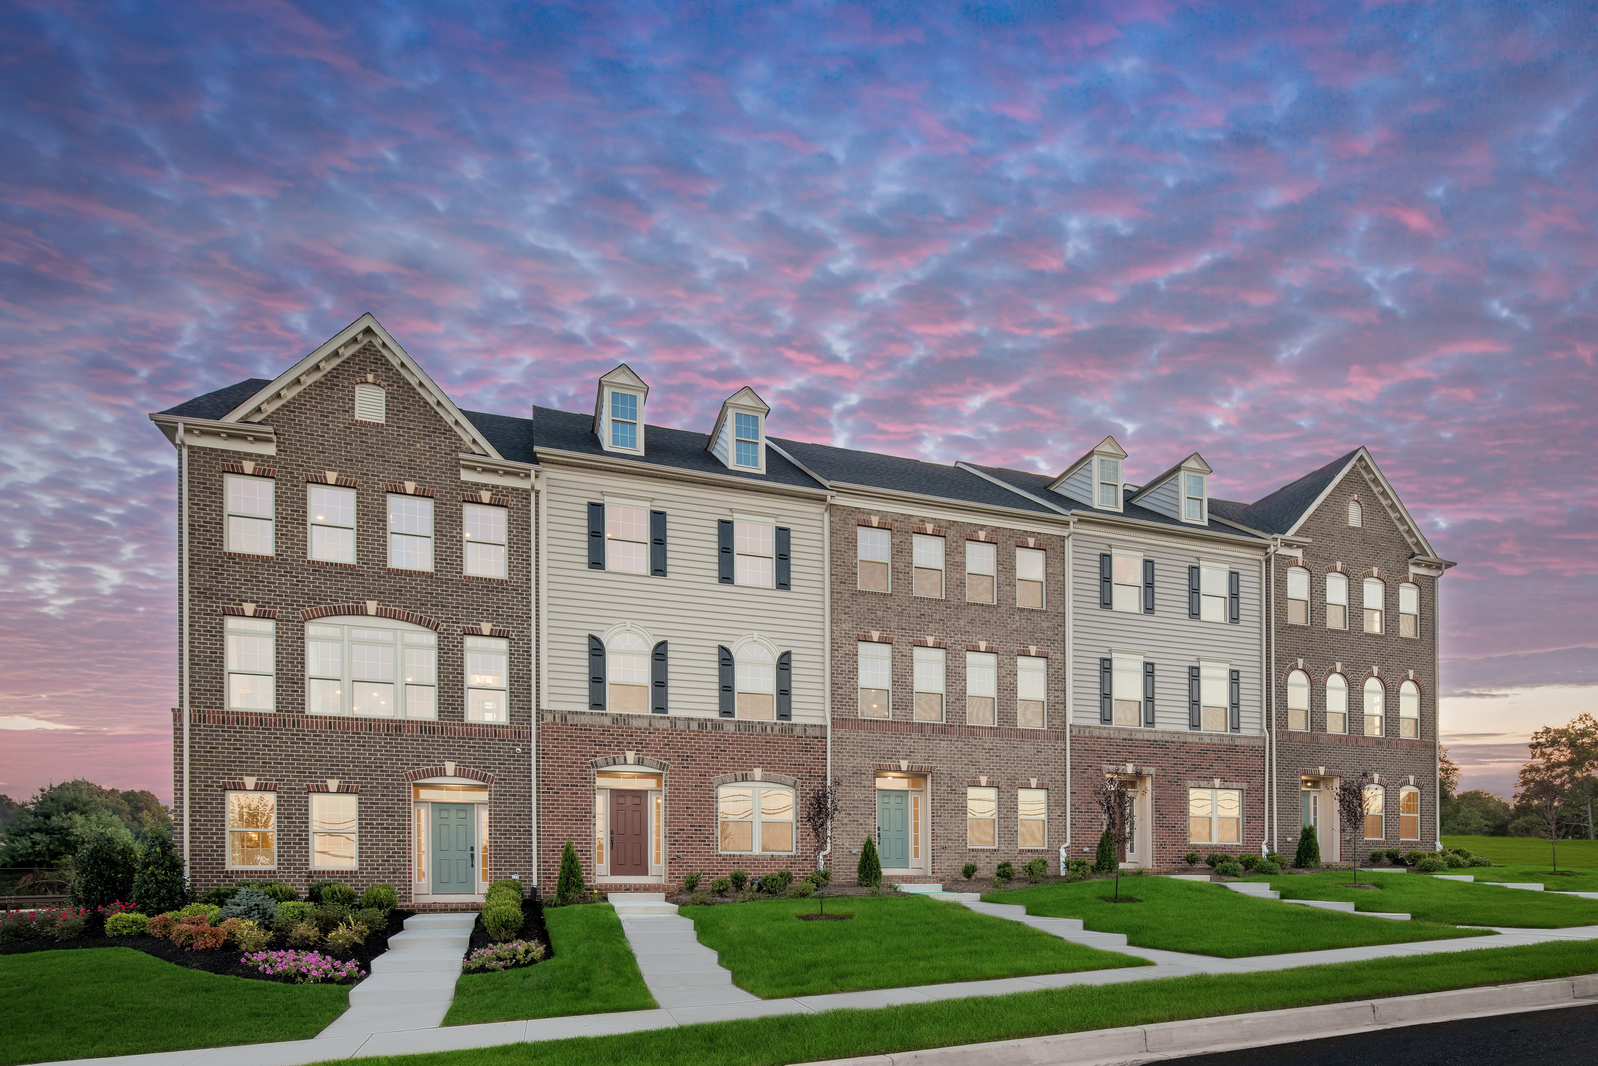 new luxury homes for sale at waverly grove in woodstock md within